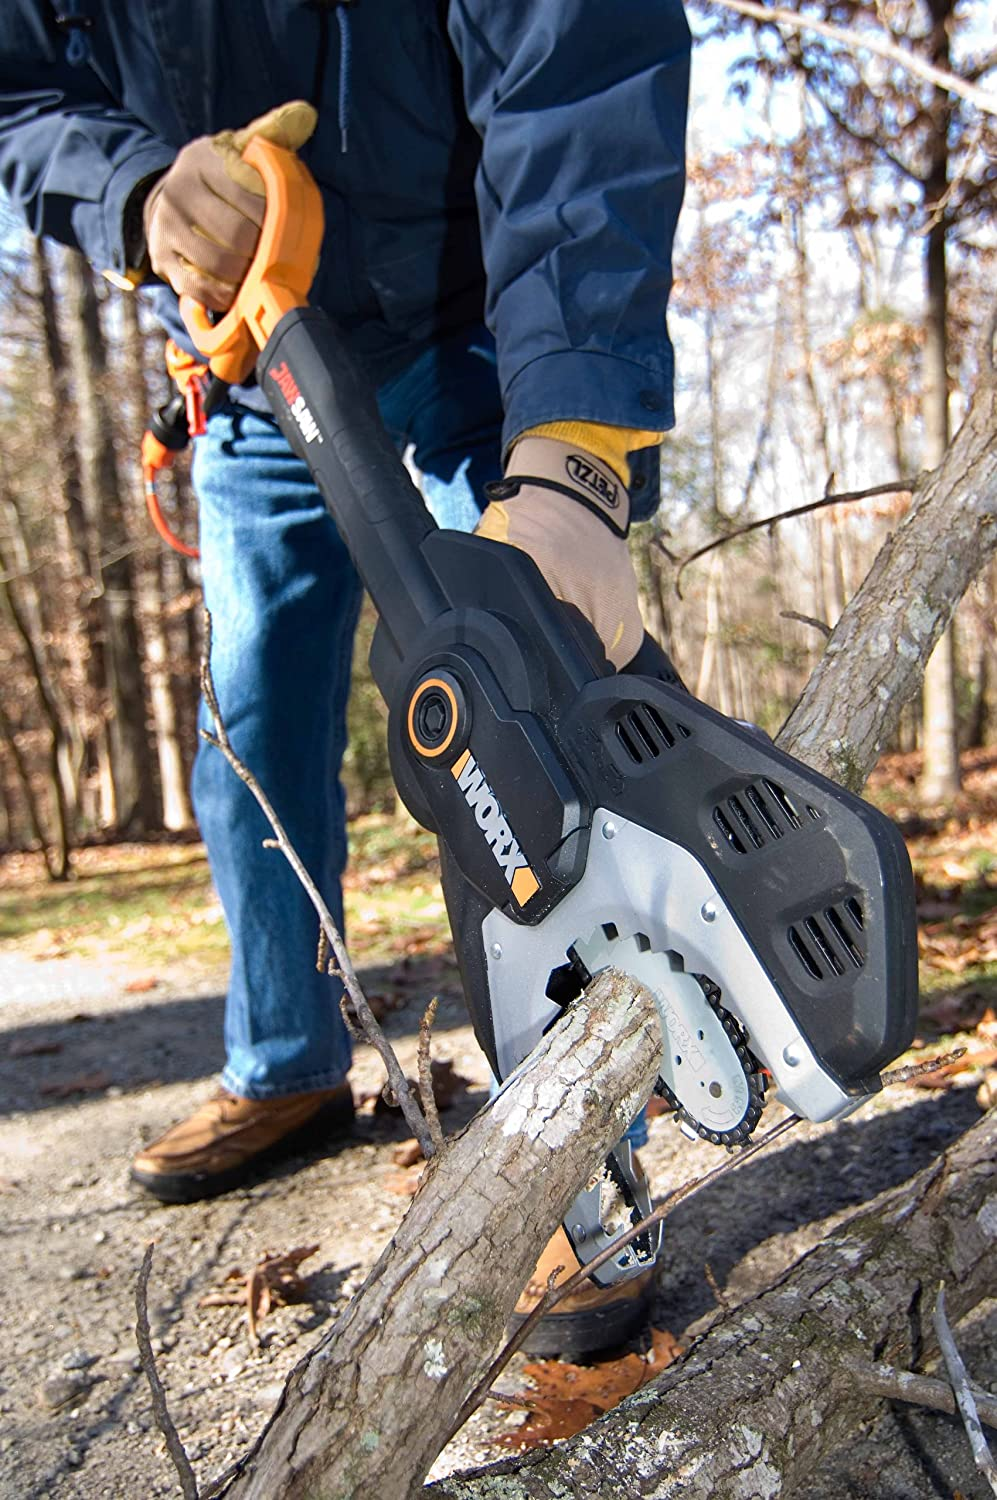 WORX WG307 Chainsaws product image 4